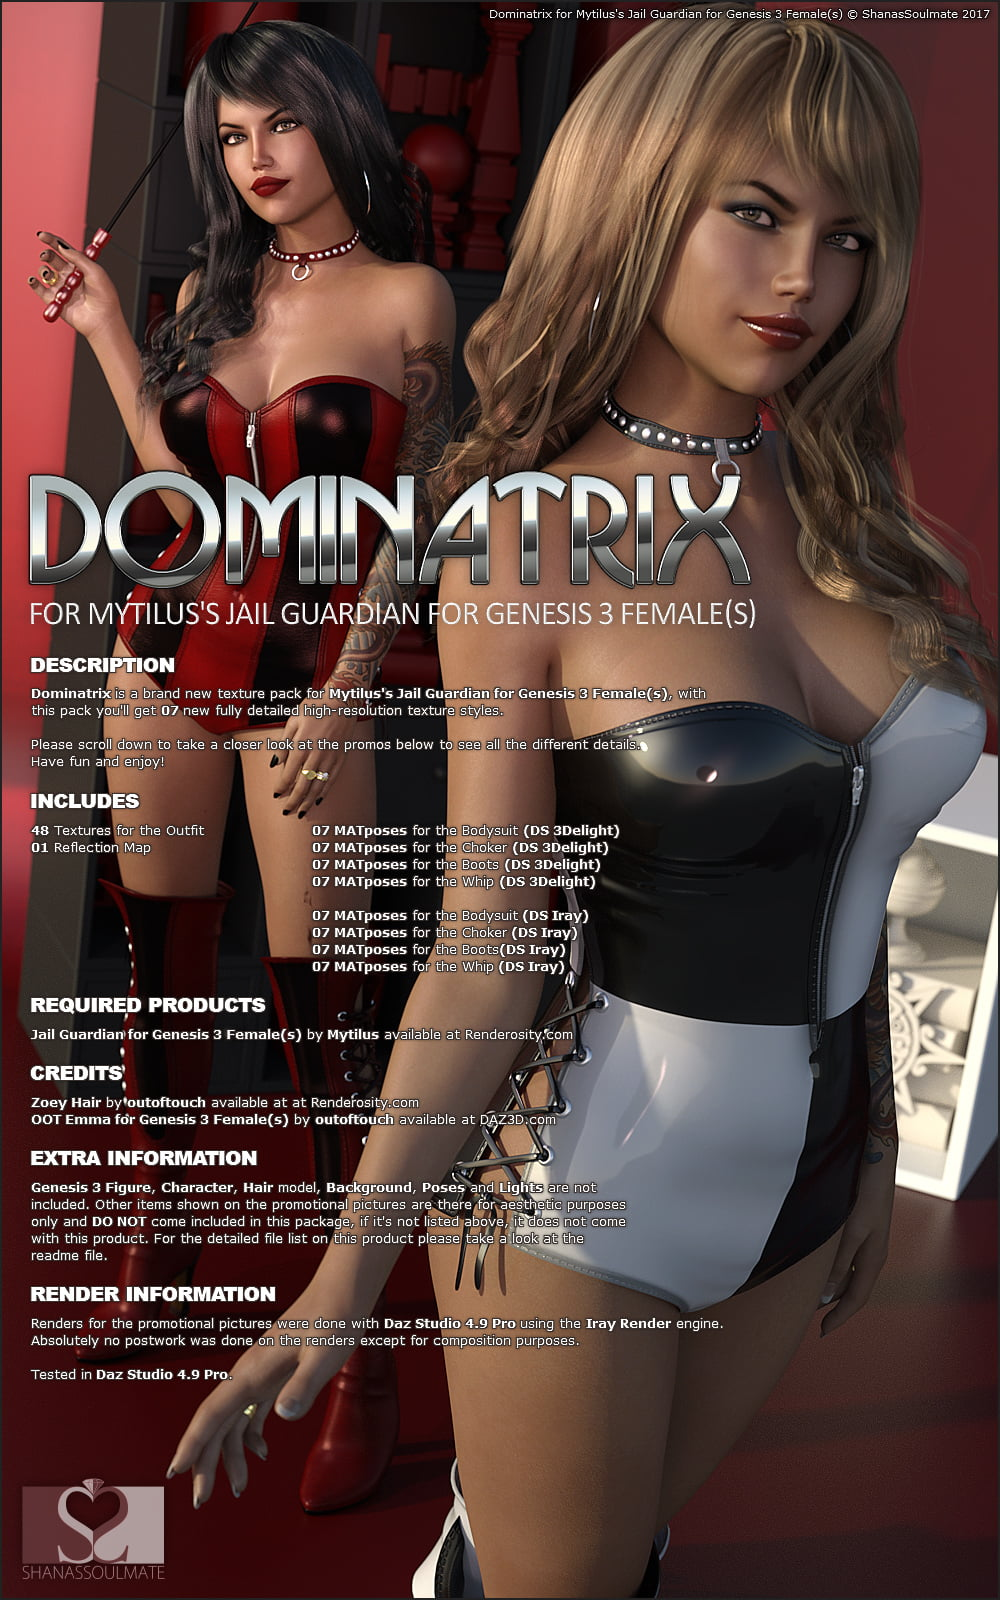 Dominatrix stuff